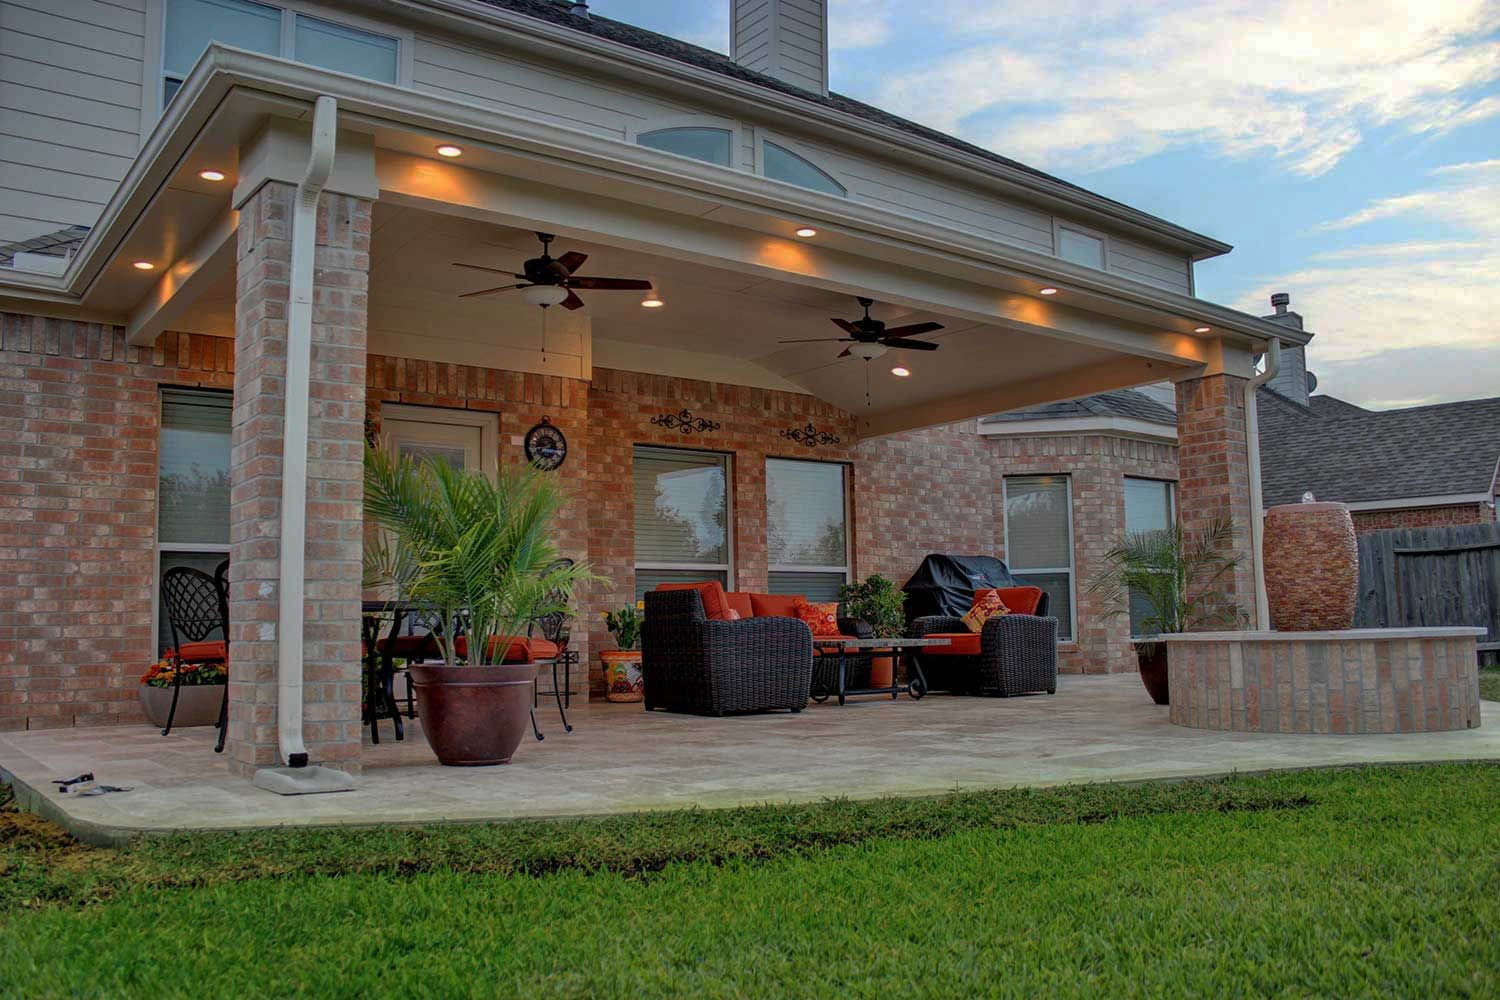 Stylish Ways to Decorate l shaped covered patio ideas on ... on L Shaped Backyard Ideas id=76987